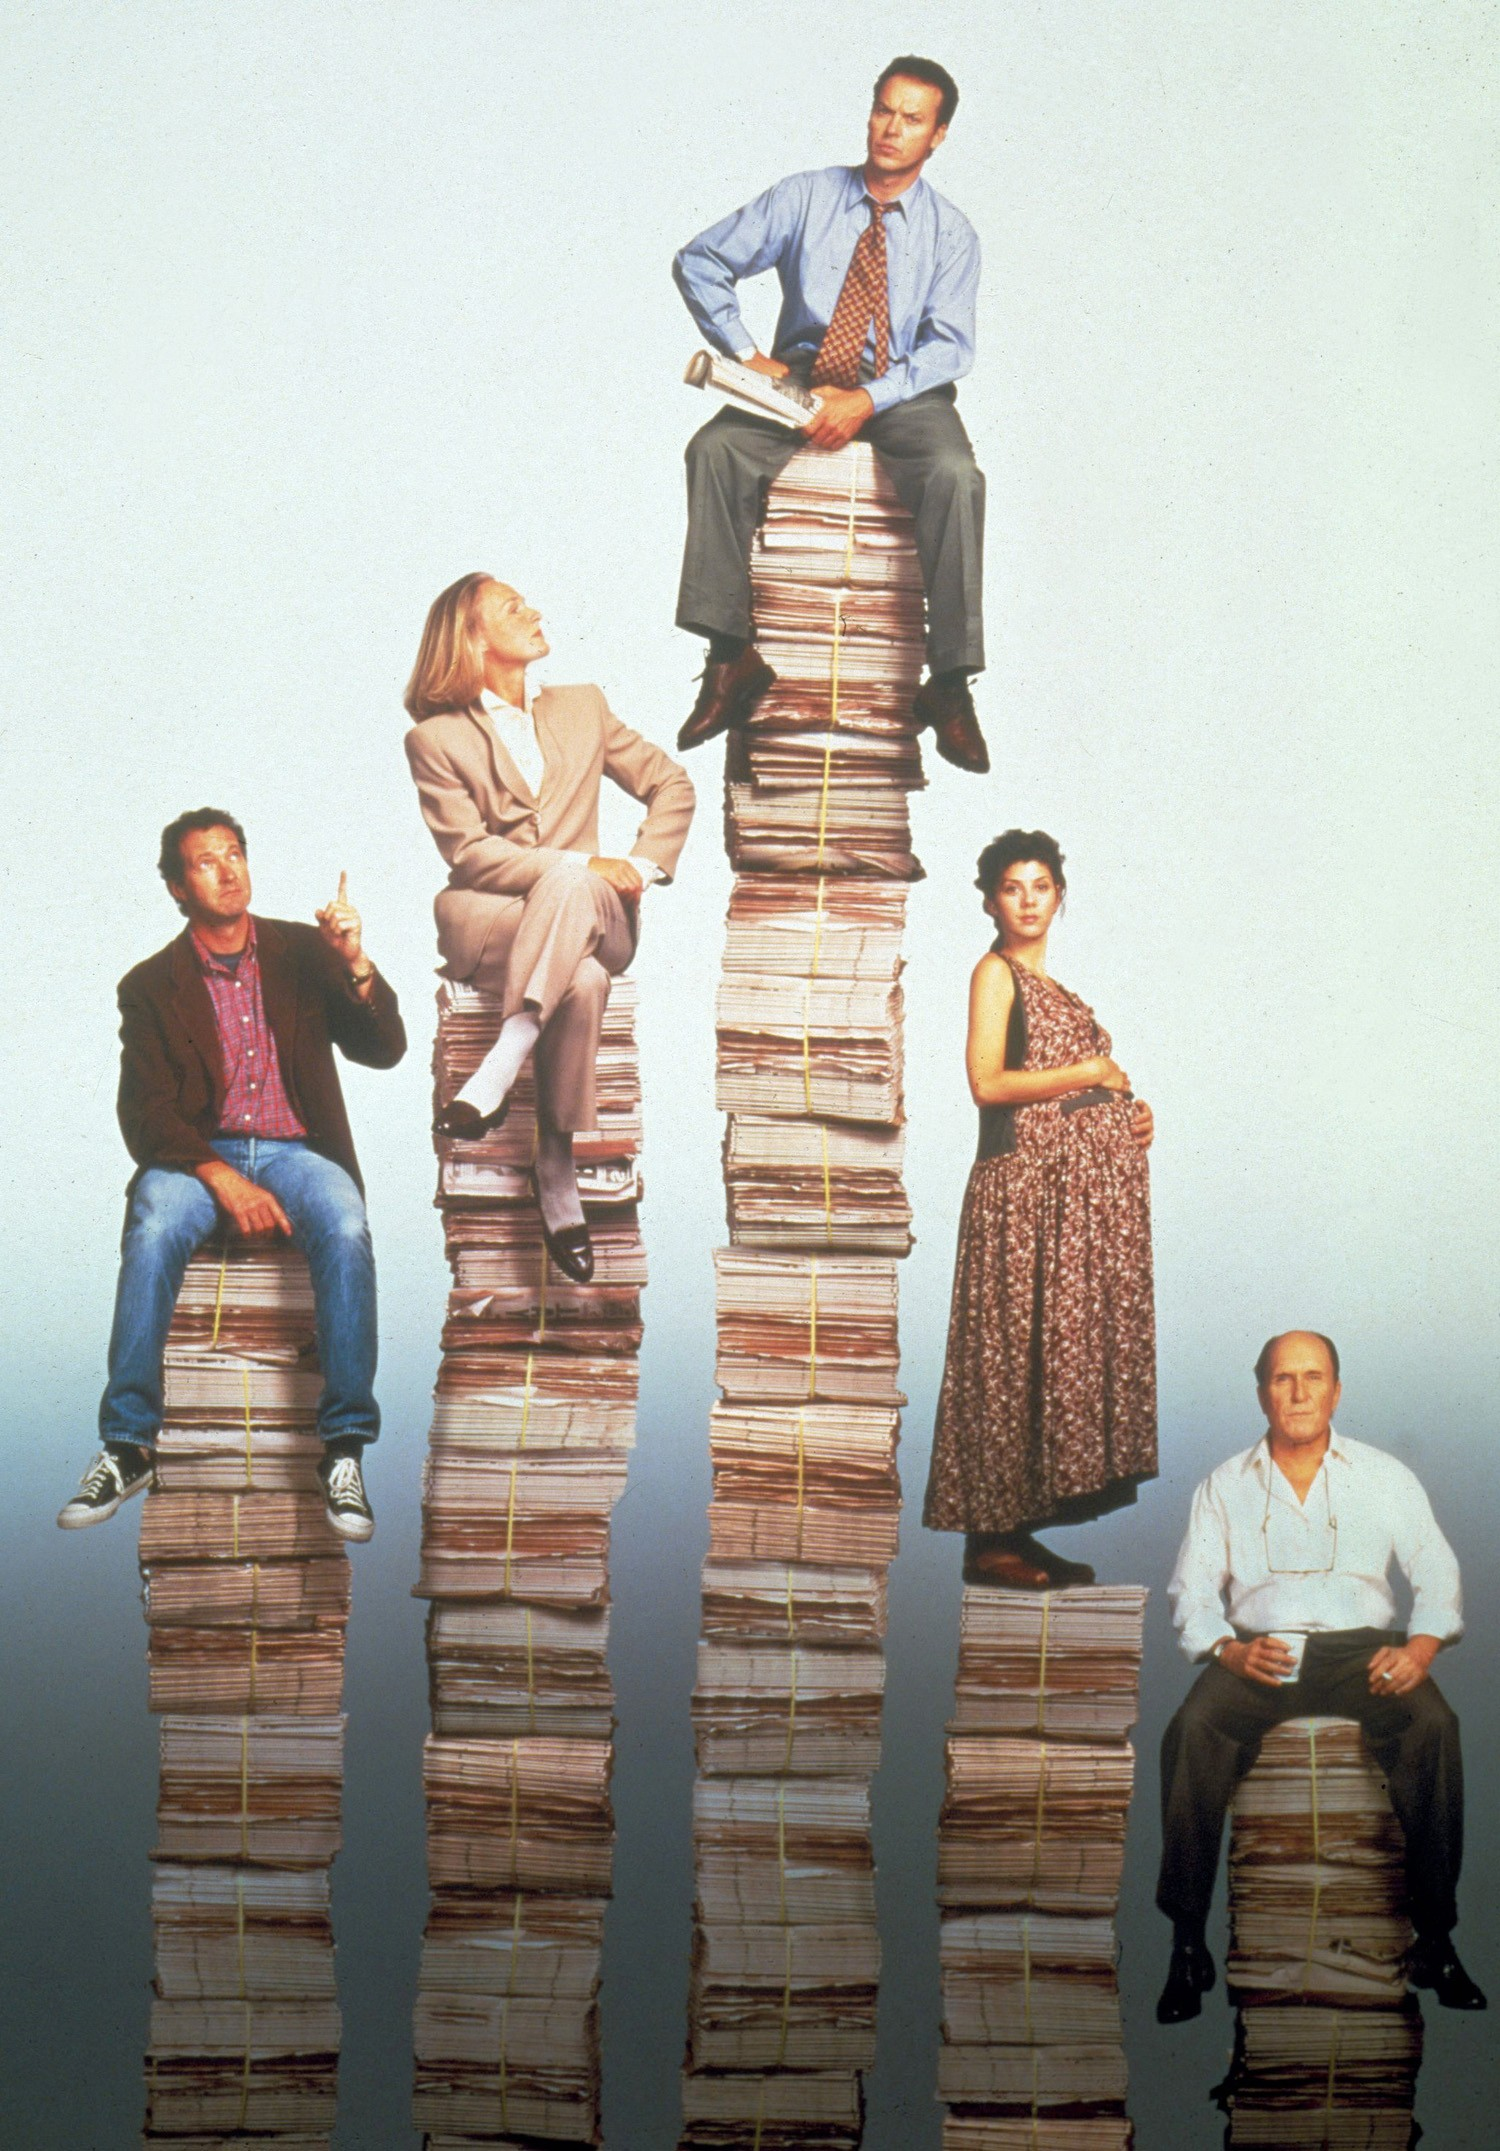 Glenn Close,Marisa Tomei,Michael Keaton,Randy Quaid,Robert Duvall